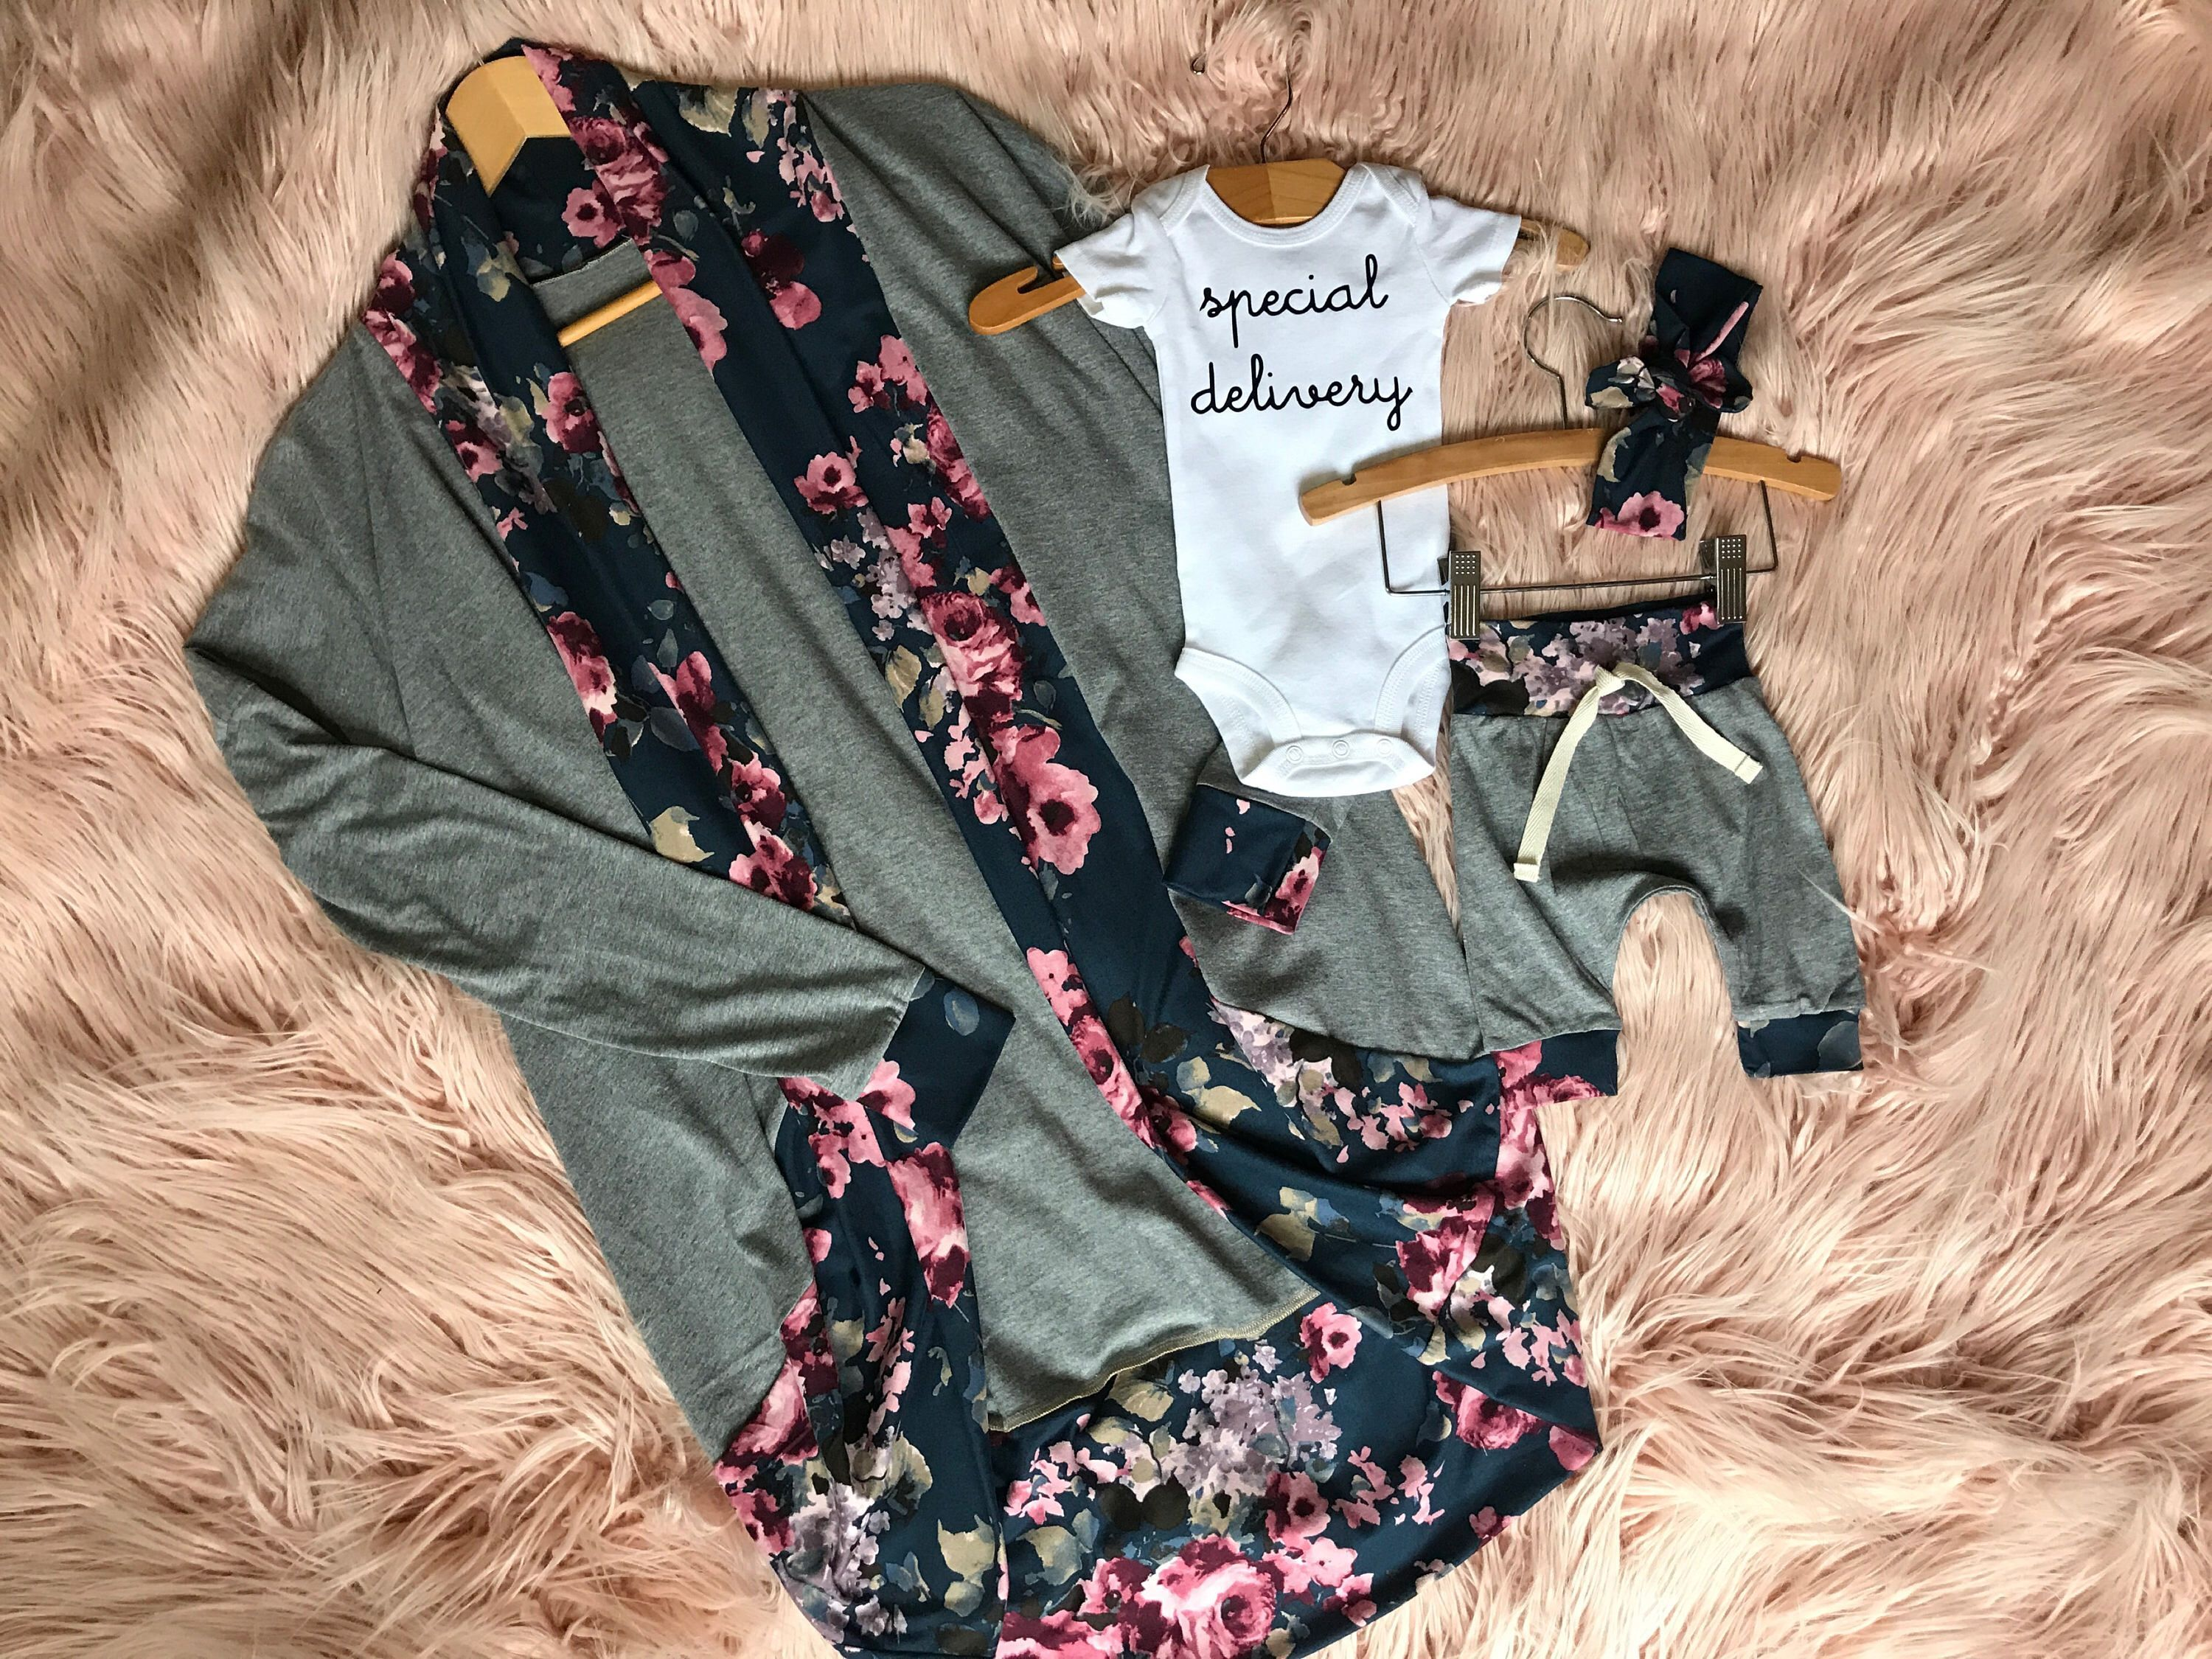 Mommy and Me Newborn Girls Take Home Outfit / Newborn Girl Coming Home Outfit / Newborn Floral Outfit // Brand New Clothing Set // Preemie,  #babygirlclothesnewborn #Brand #Clothing #coming #Floral #girl #Girls #Home #Mommy #Newborn #outfit #preemie #Set